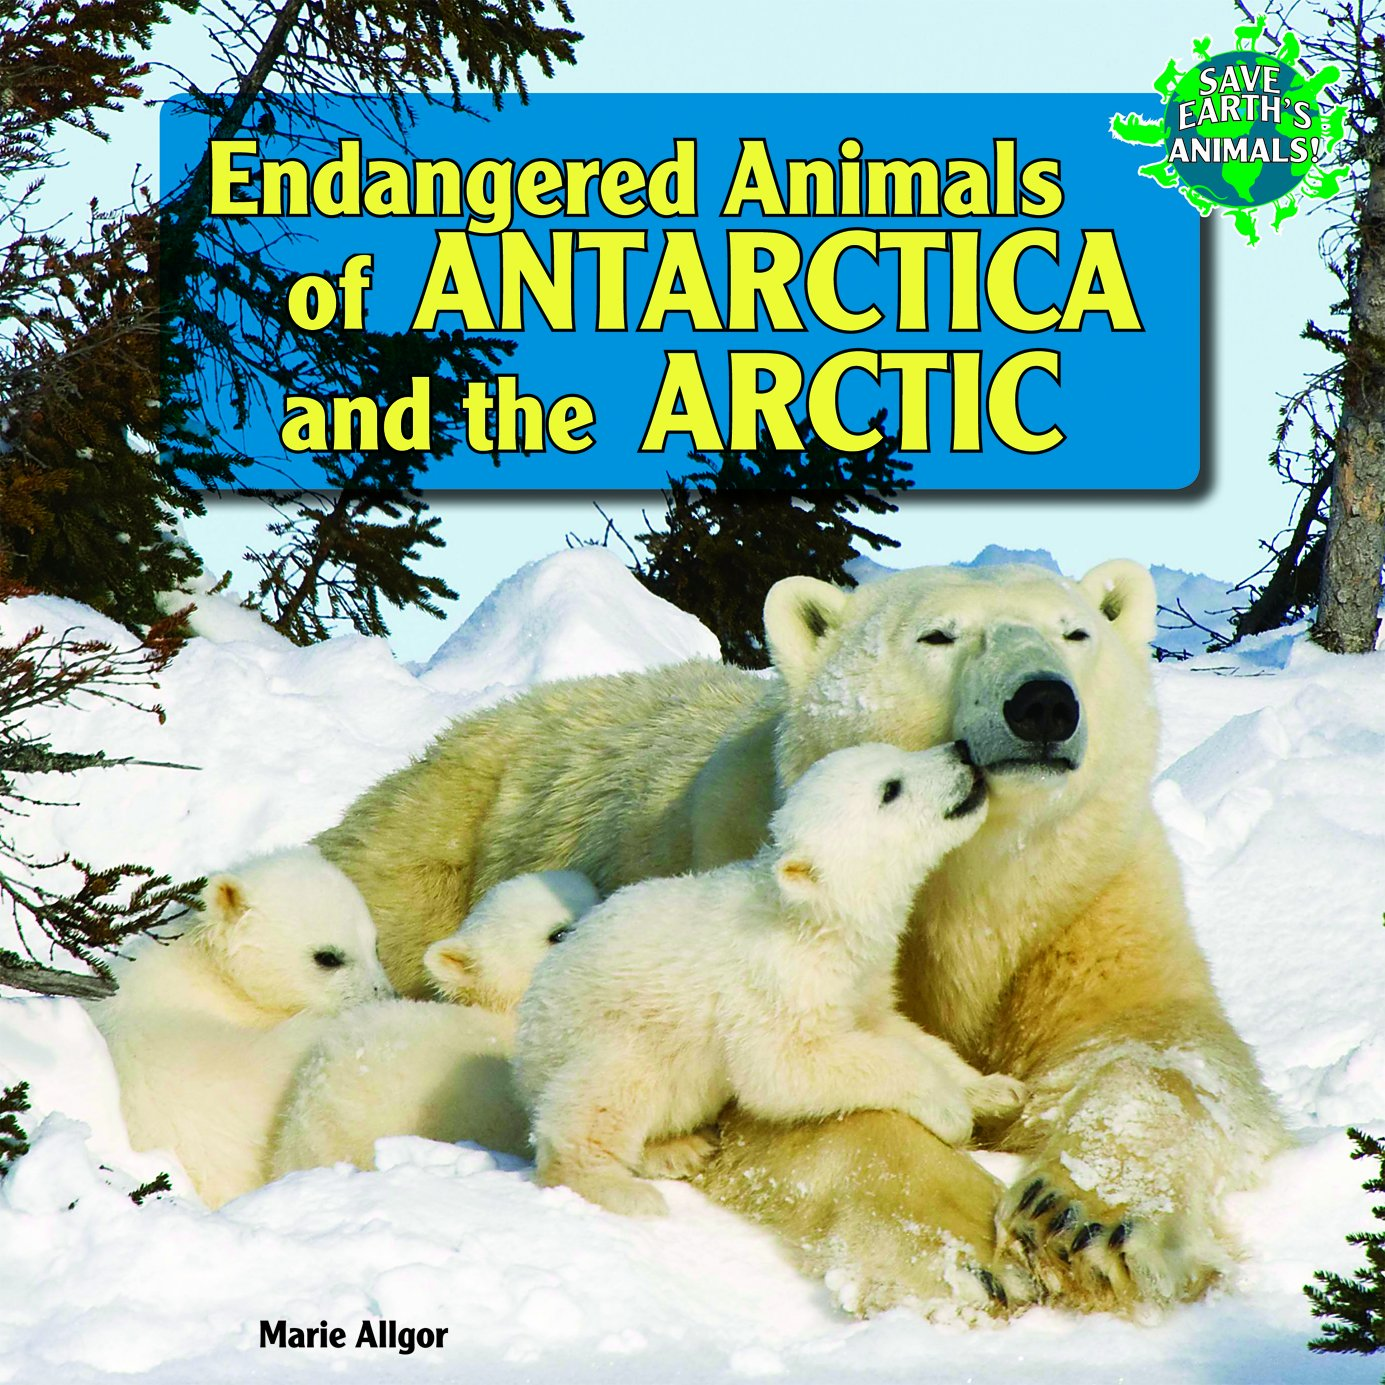 Endangered Animals of Antarctica and the Arctic (Save Earth's Animals!)